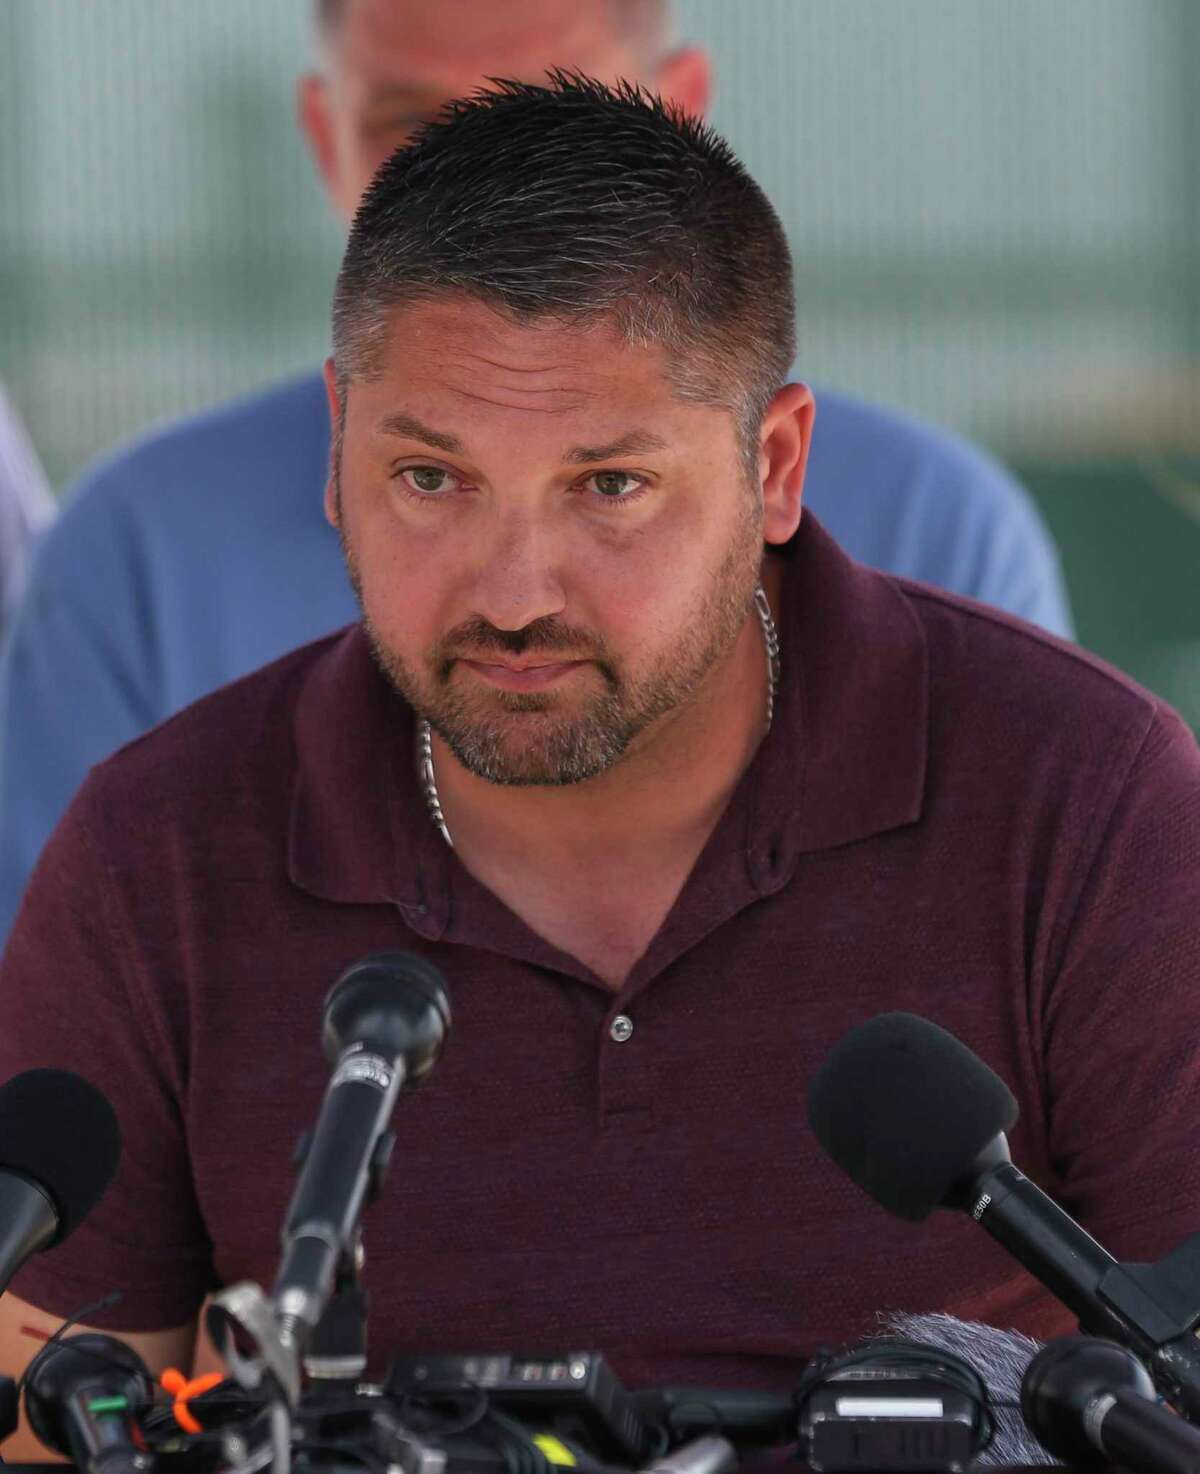 Santa Fe Mayor-Elect Jason Tabor talks during a press briefing outside of Santa Fe High School on Saturday, May 19, 2018, in Santa Fe. The shooting on Friday killed 10 people and wounded 13.